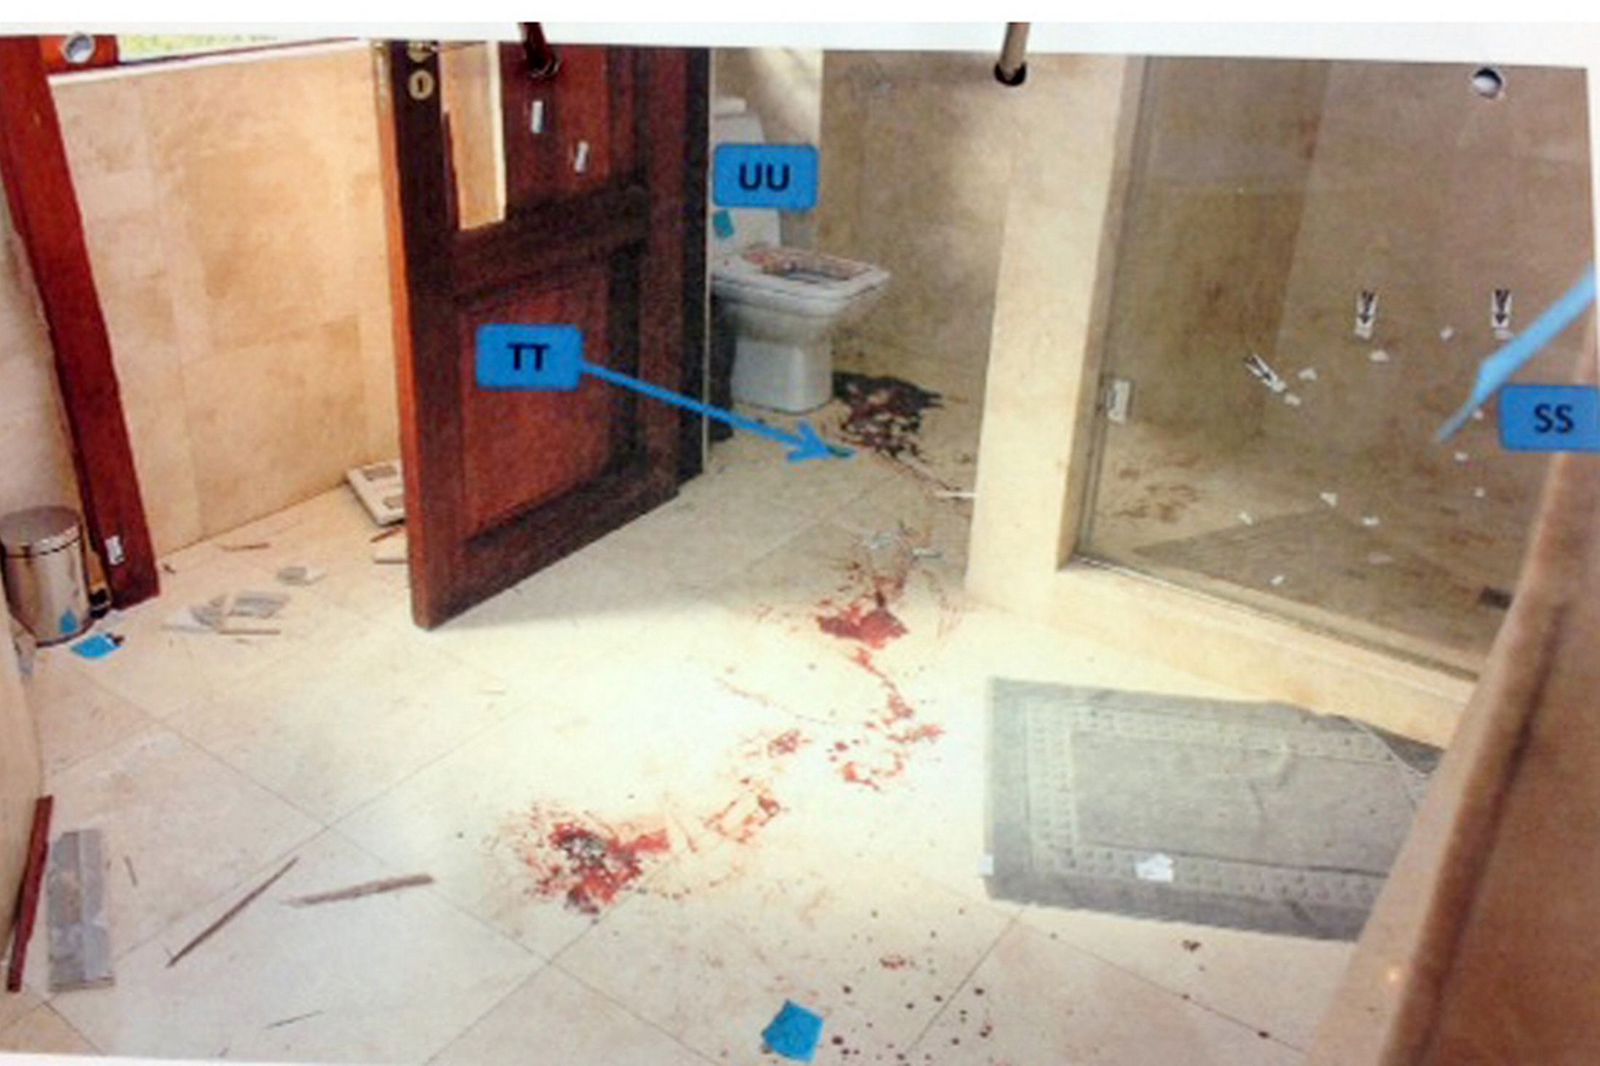 The Smell Death Hung Door Taste Blood Police Photographer Reveals Gruesome Crime Scene Haunts Two Years Oscar Pistorius Shot Reeva Steenk as well Oscar Pistorius Never Go Jail 4243792 in addition Oscar Pistorius Appeal Court Rules Athlete Guilty Reeva Steenk  Murder 1531605 additionally Oscar Pistorius Third Anniversary Of Reeva Steenk s Death And A Movie together with The Question Of Why Oscar Pistorius Killed Reeva Steenk  Is Still A Mystery Open To Endless Interpretation. on oscar pistorius case bathroom door